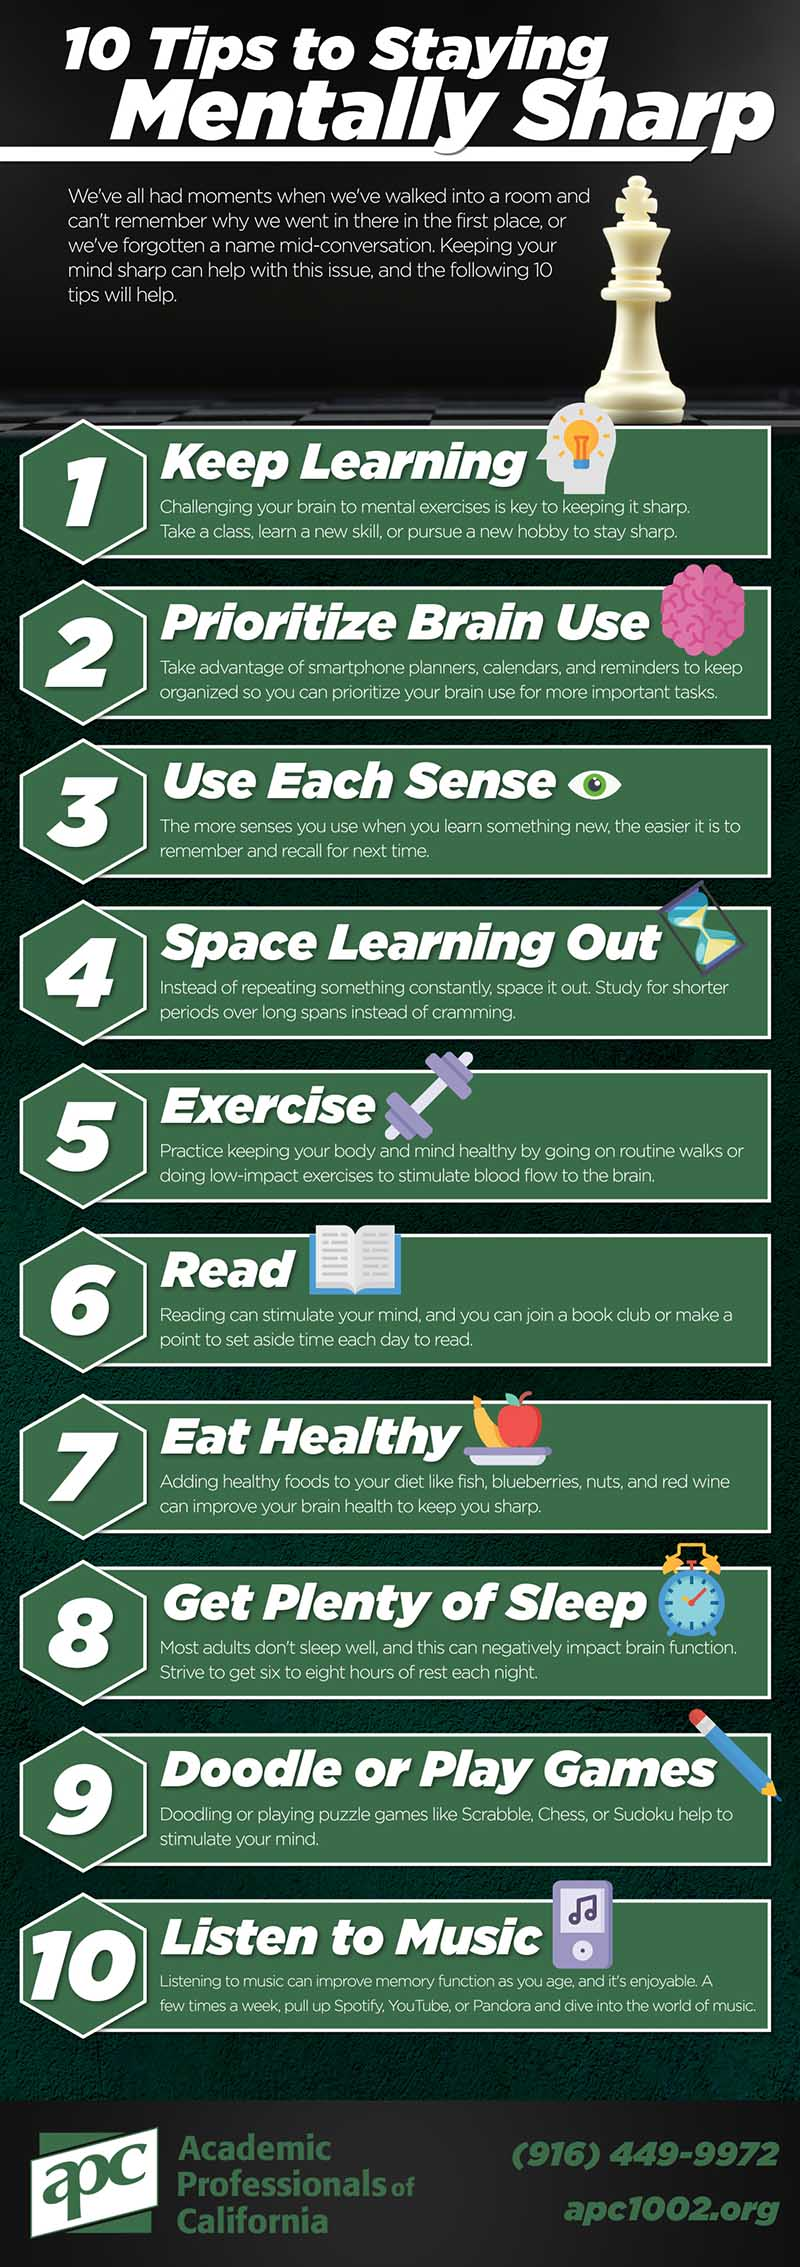 10 Tips to Staying Mentally Sharp